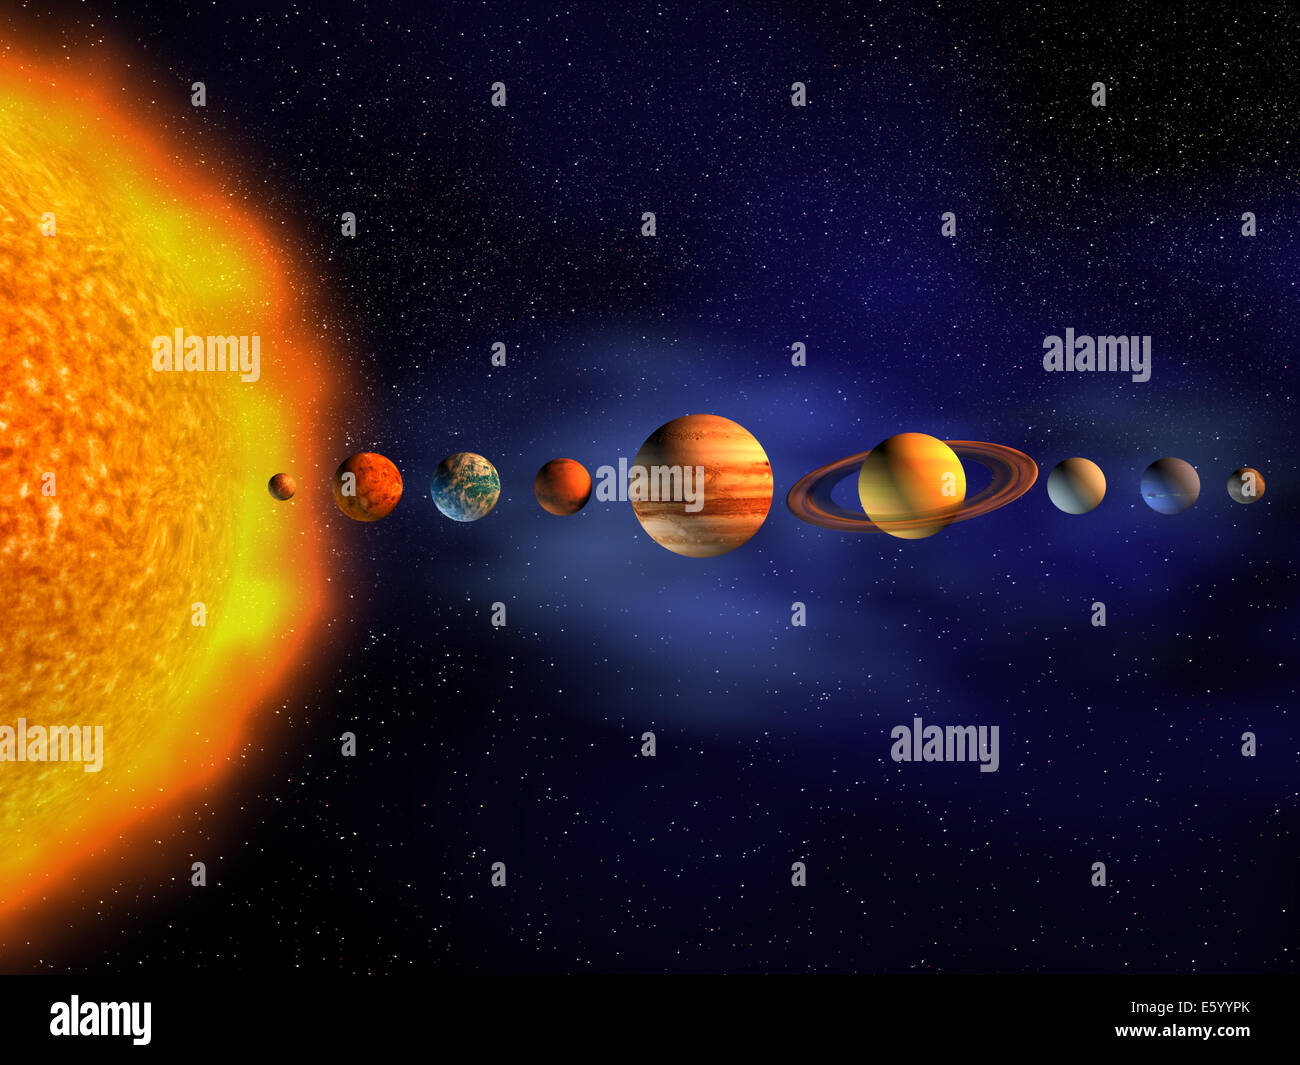 Diagram Of Planets In Solar System - 3d Render Stock Photo